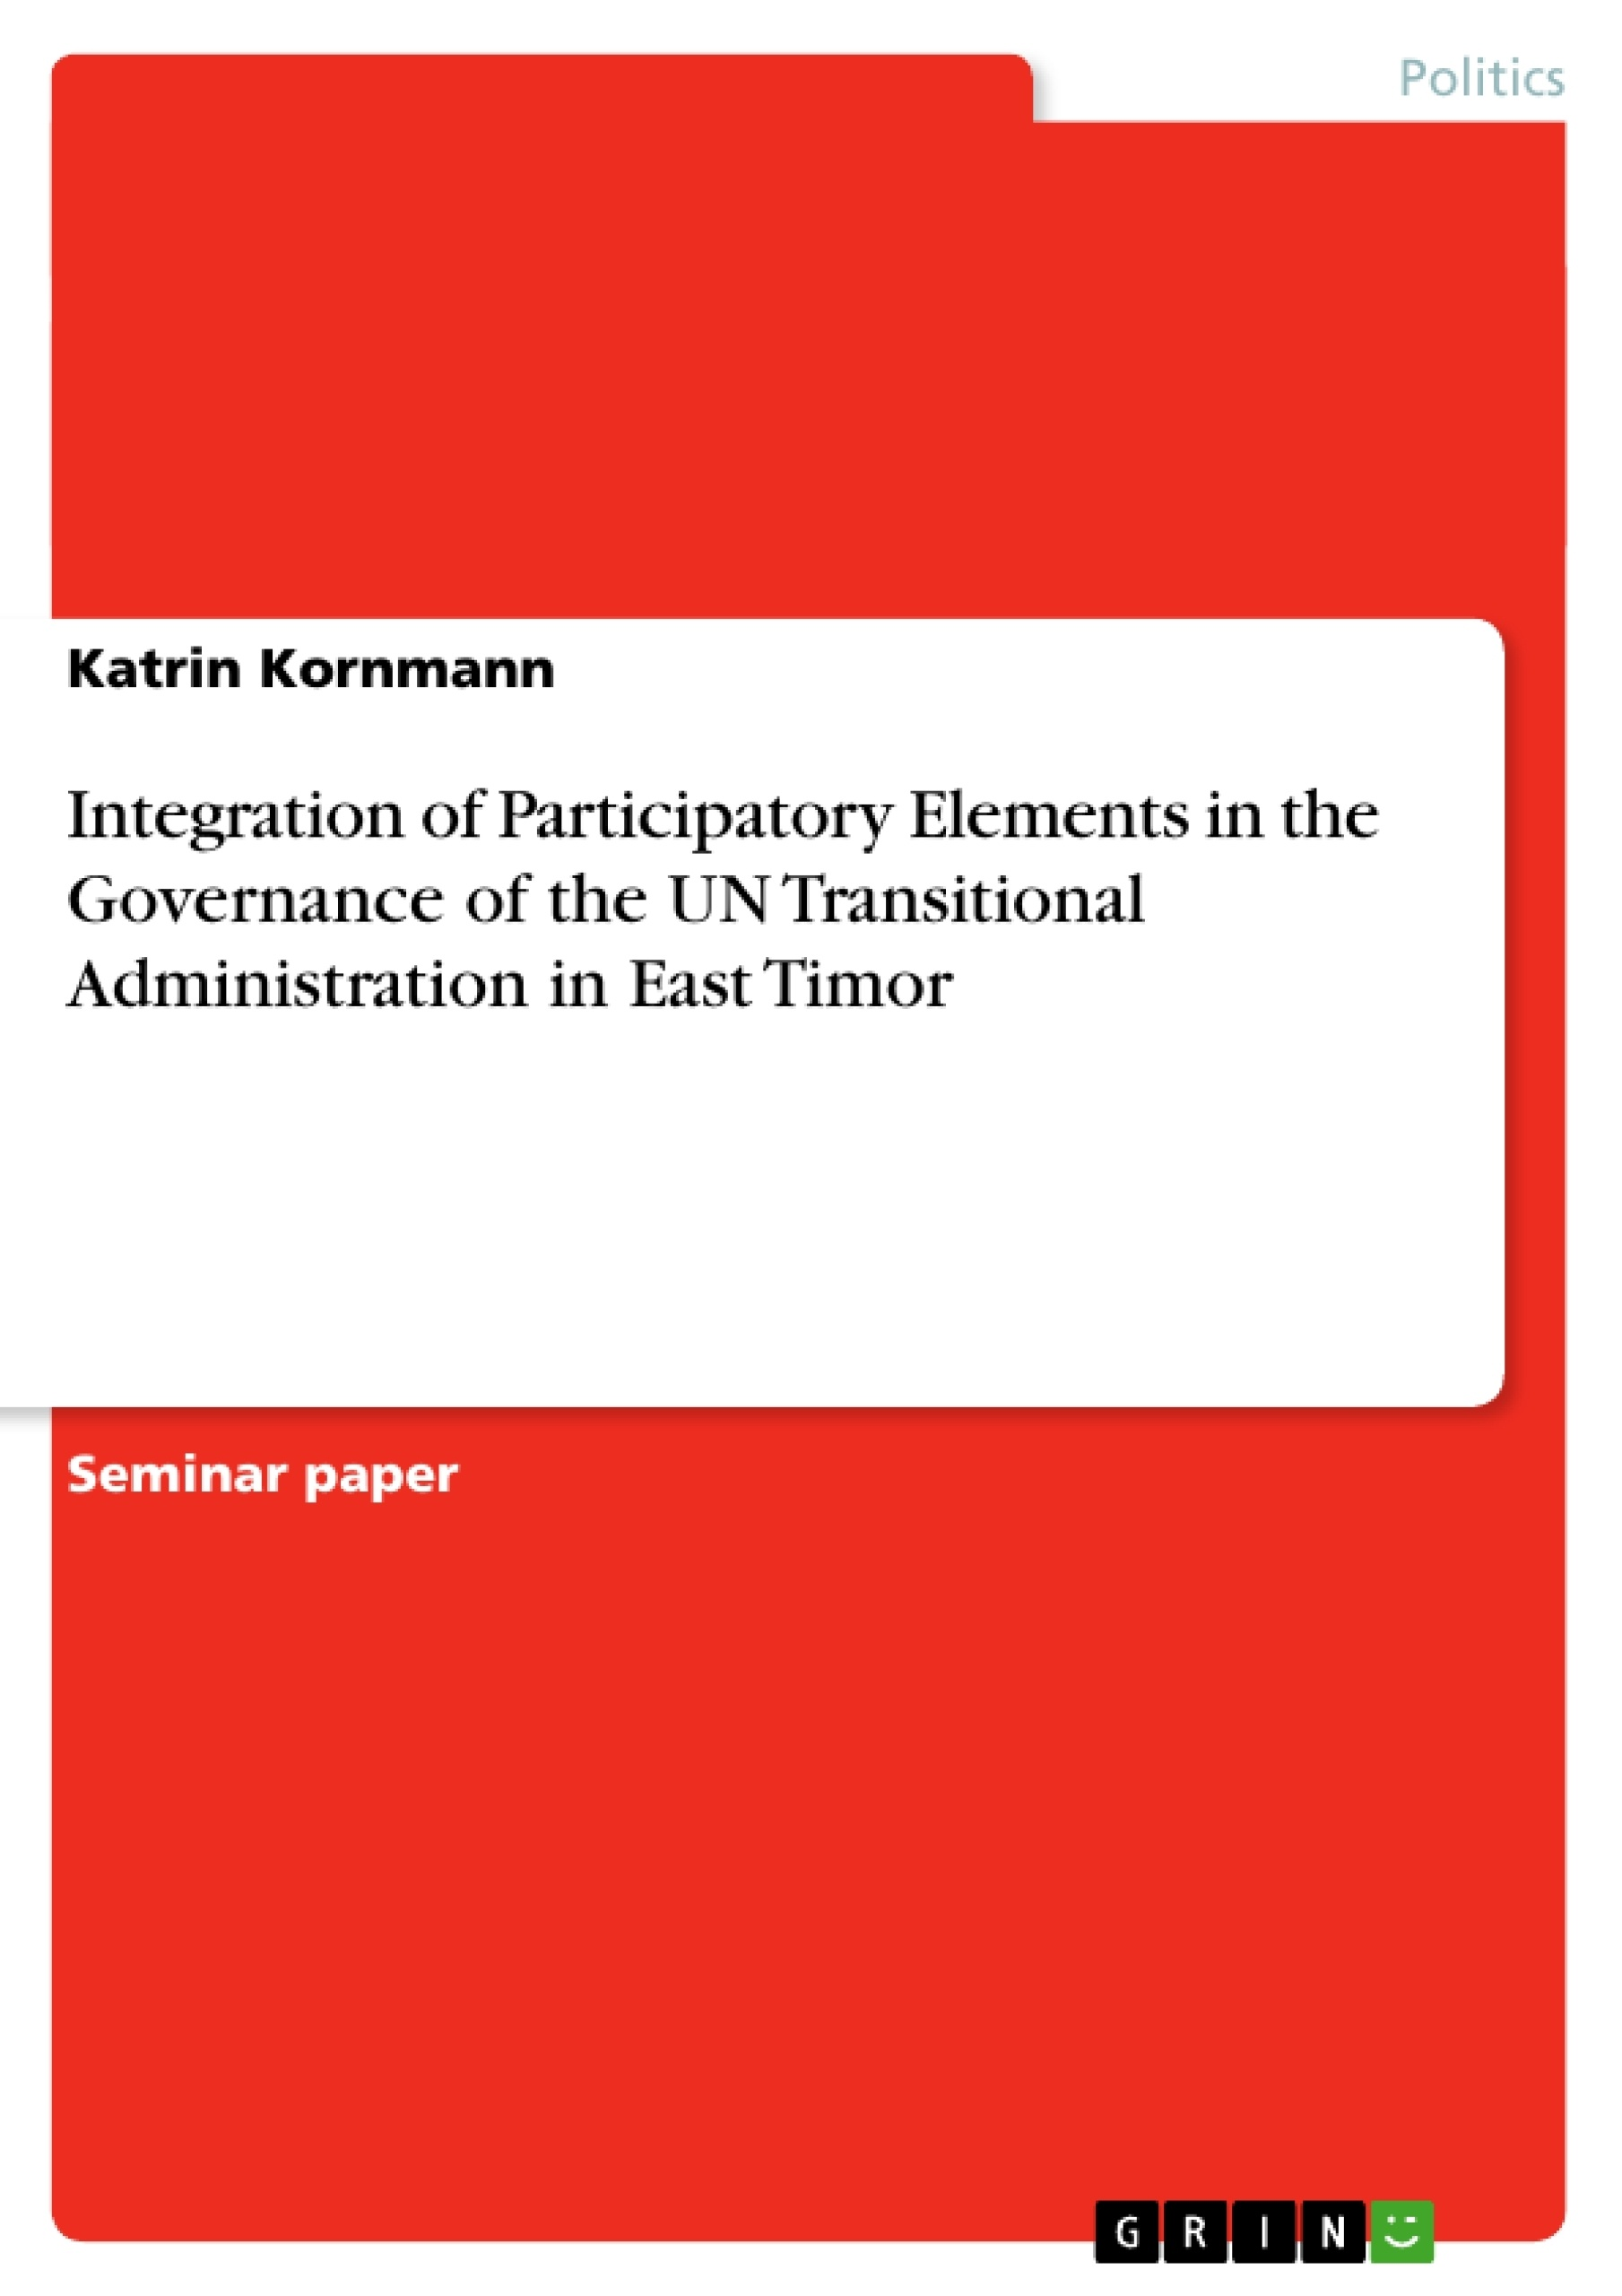 Title: Integration of Participatory Elements in the Governance of the UN Transitional Administration in East Timor